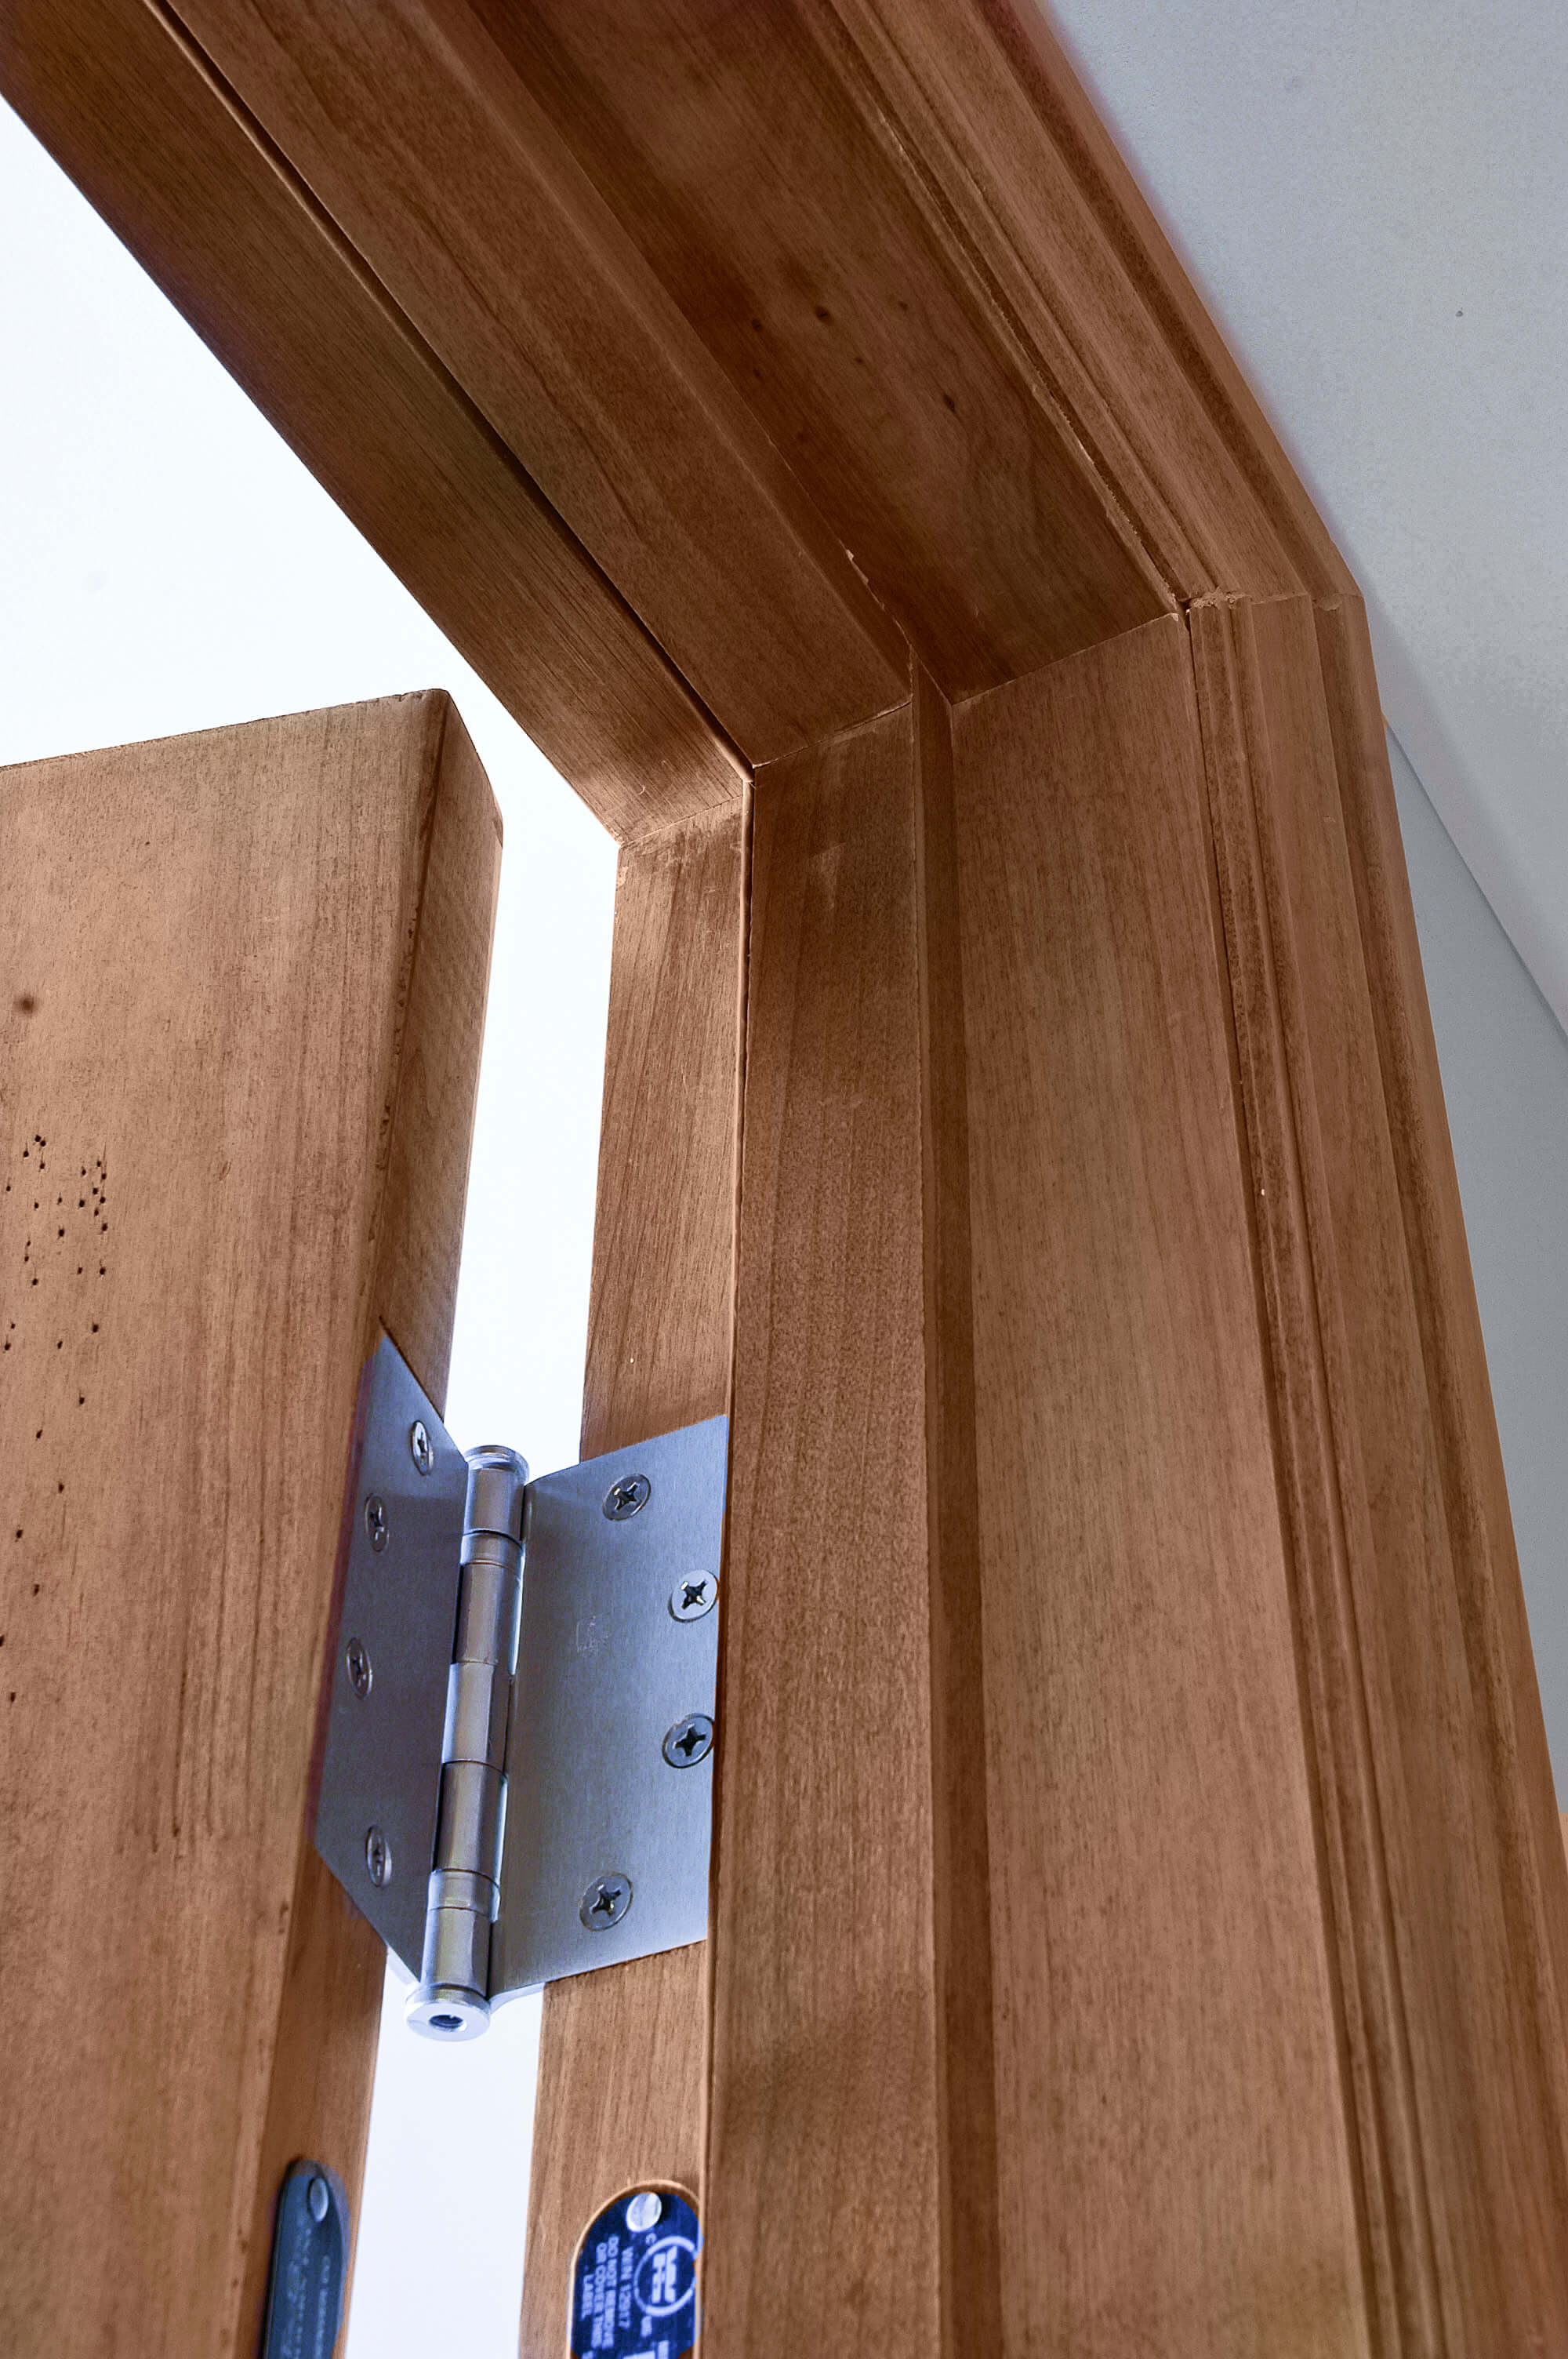 Doors Jambs: Wood Fire-Rated Doors And Frames